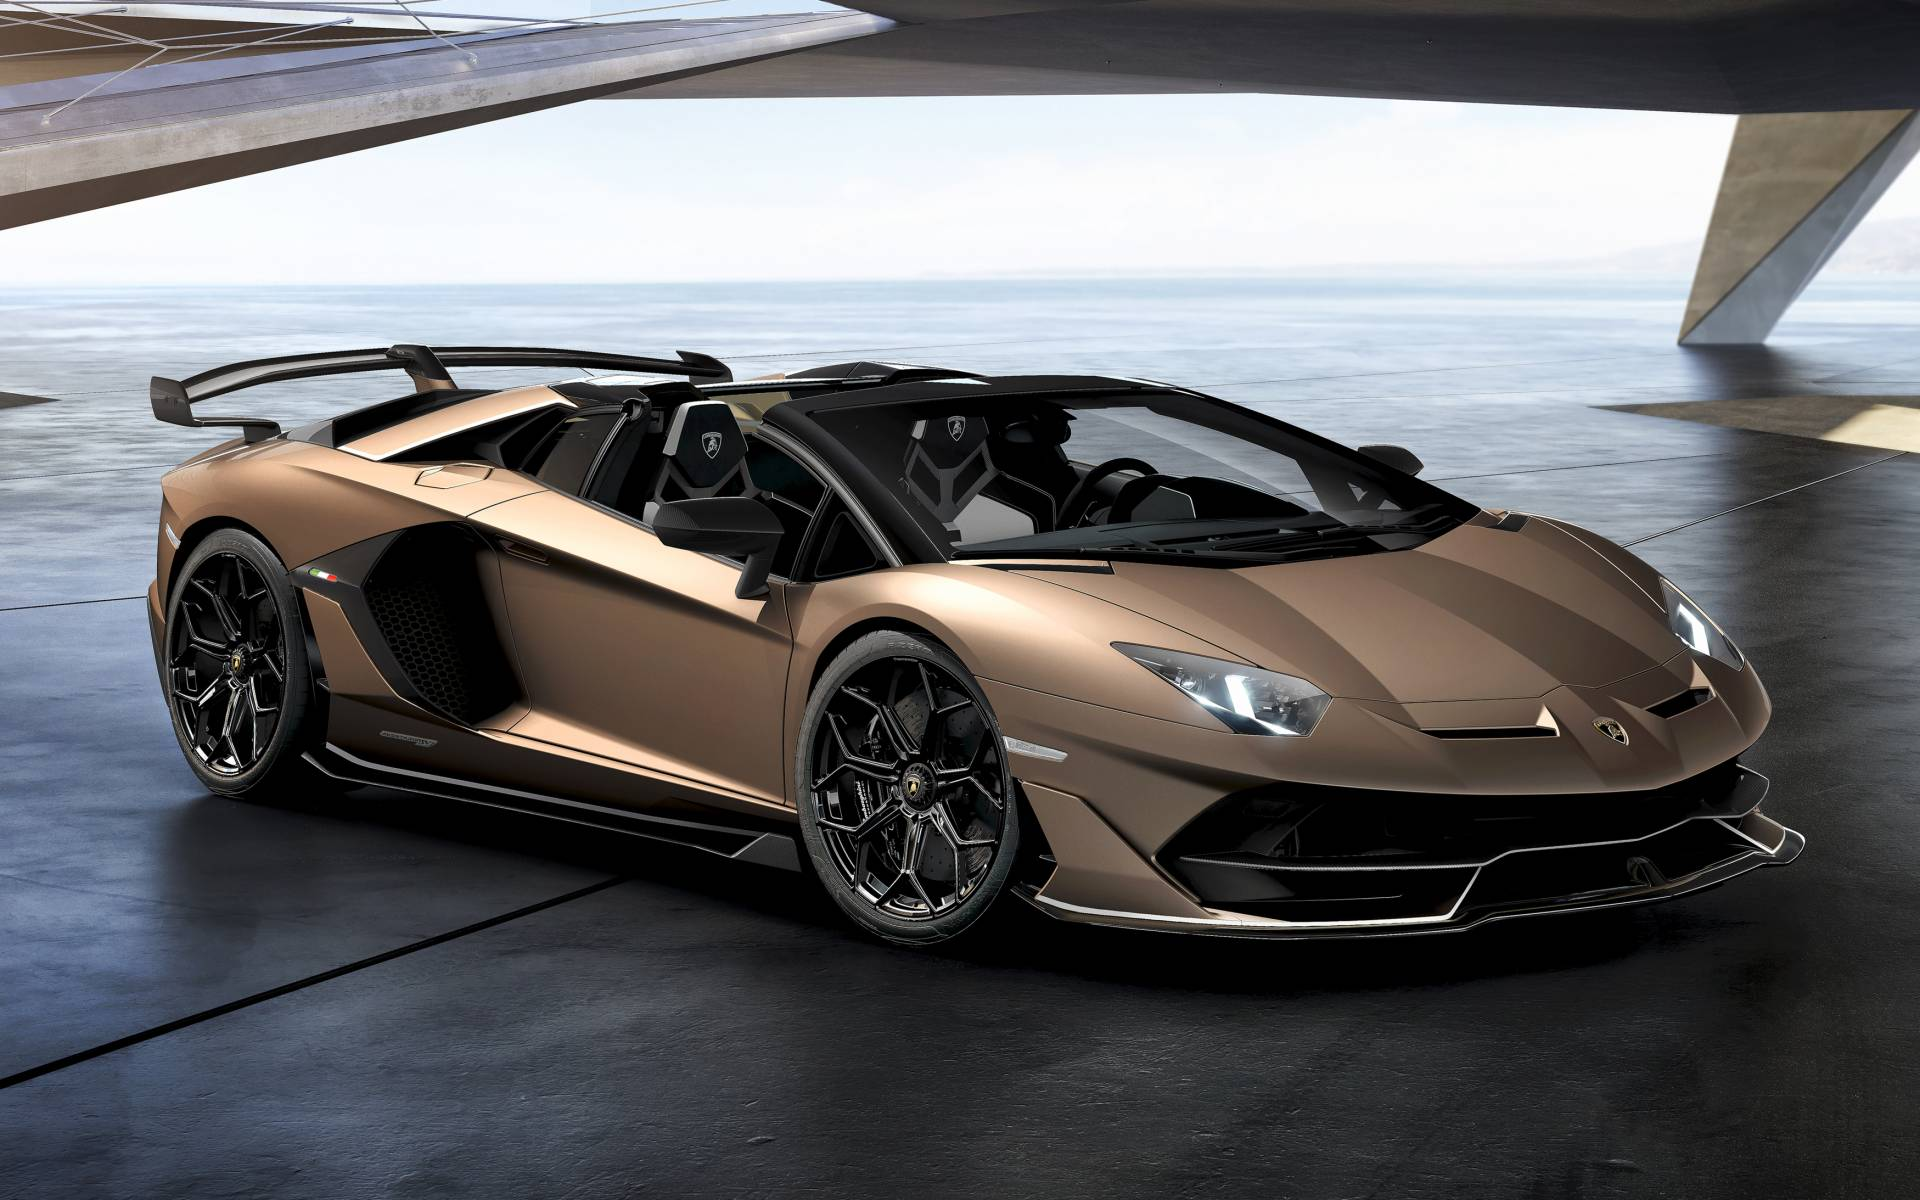 2020 Lamborghini Aventador News Reviews Picture Galleries And Videos The Car Guide